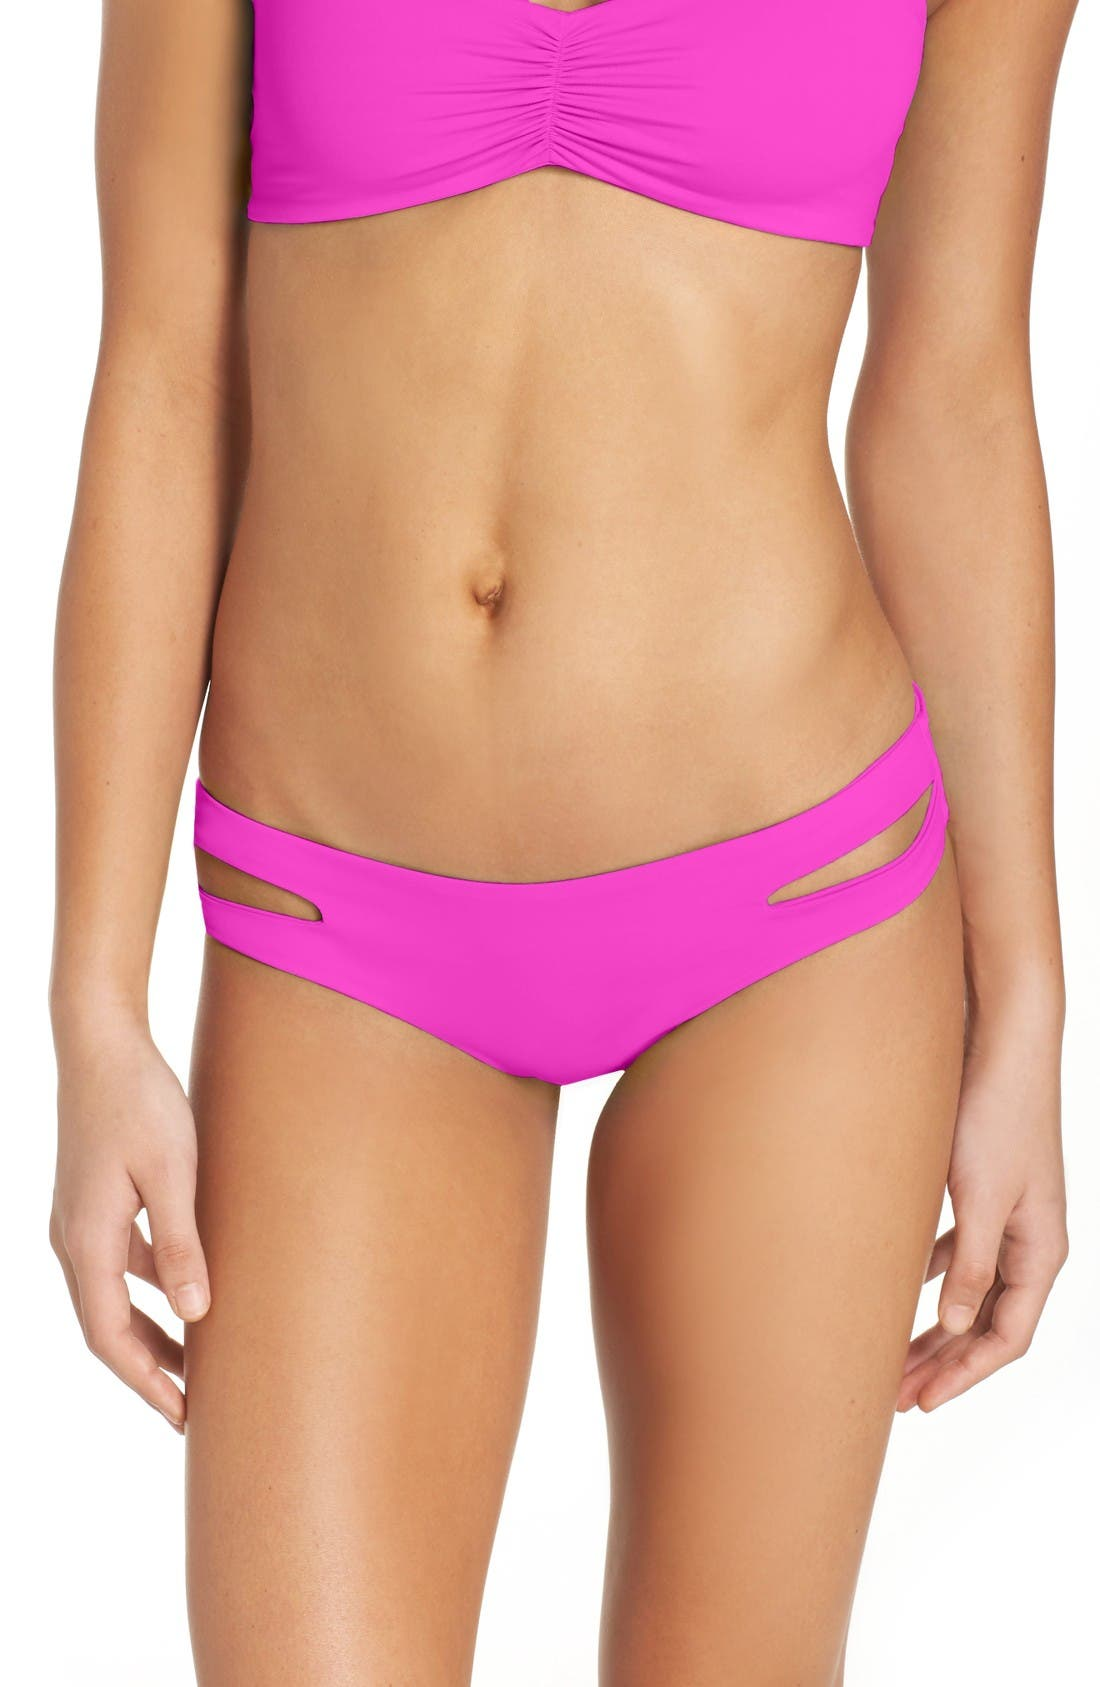 _100262613?fit=fill&fm=jpg&dpr=2&h=368&w=240&quality=45 l space swimsuits & cover ups for women nordstrom,L Space Swimwear Size Chart